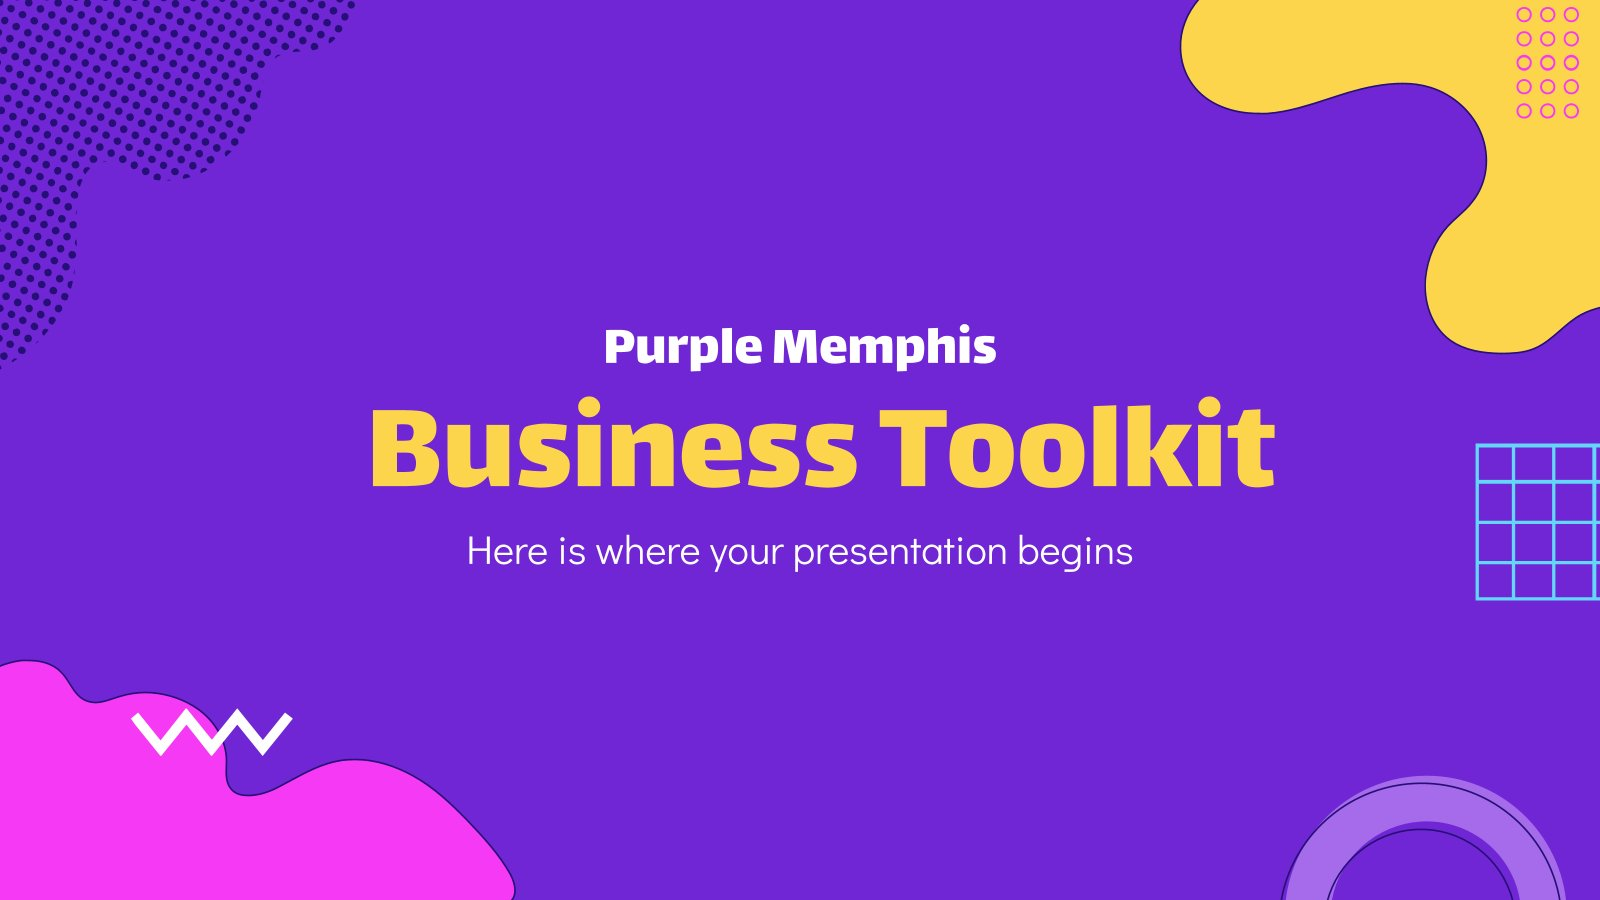 Purple Memphis Business Toolkit presentation template